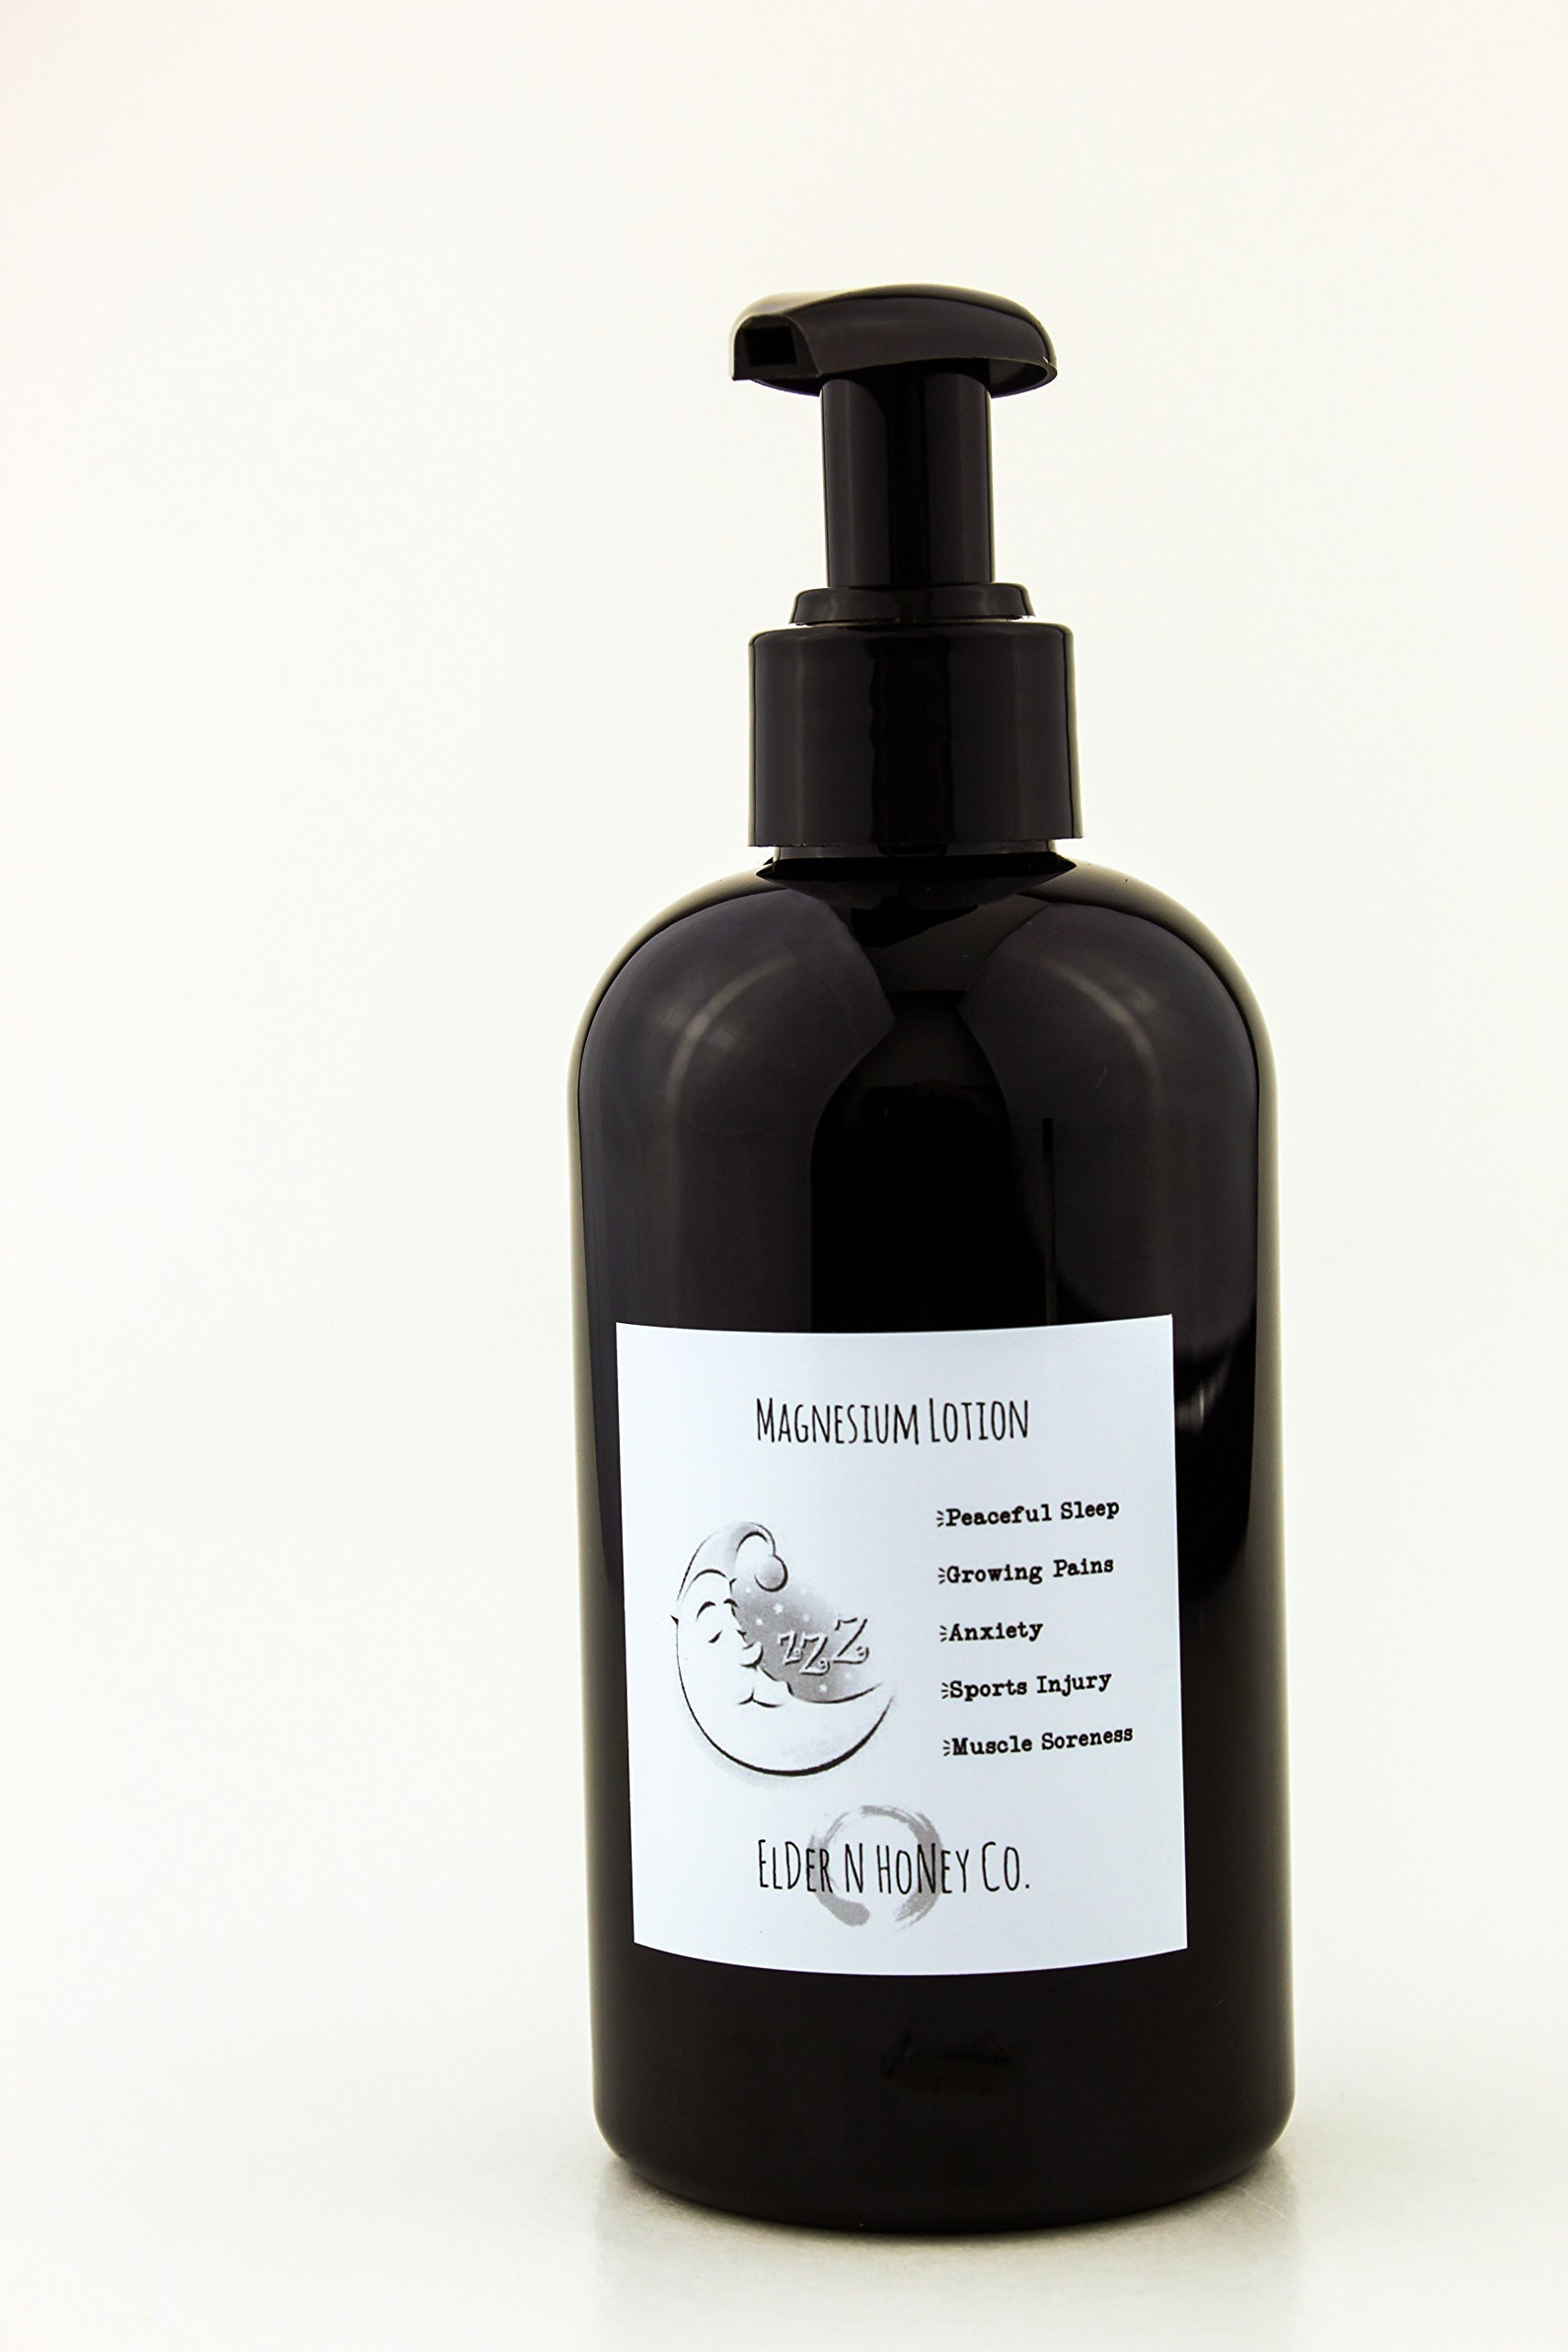 Magnesium Lotion For Kids - Unscented - Organic - Vegan - Growing Pains - Natural Sleep Aid - Sports - Sprains - Mood - Anxiety - All Natural